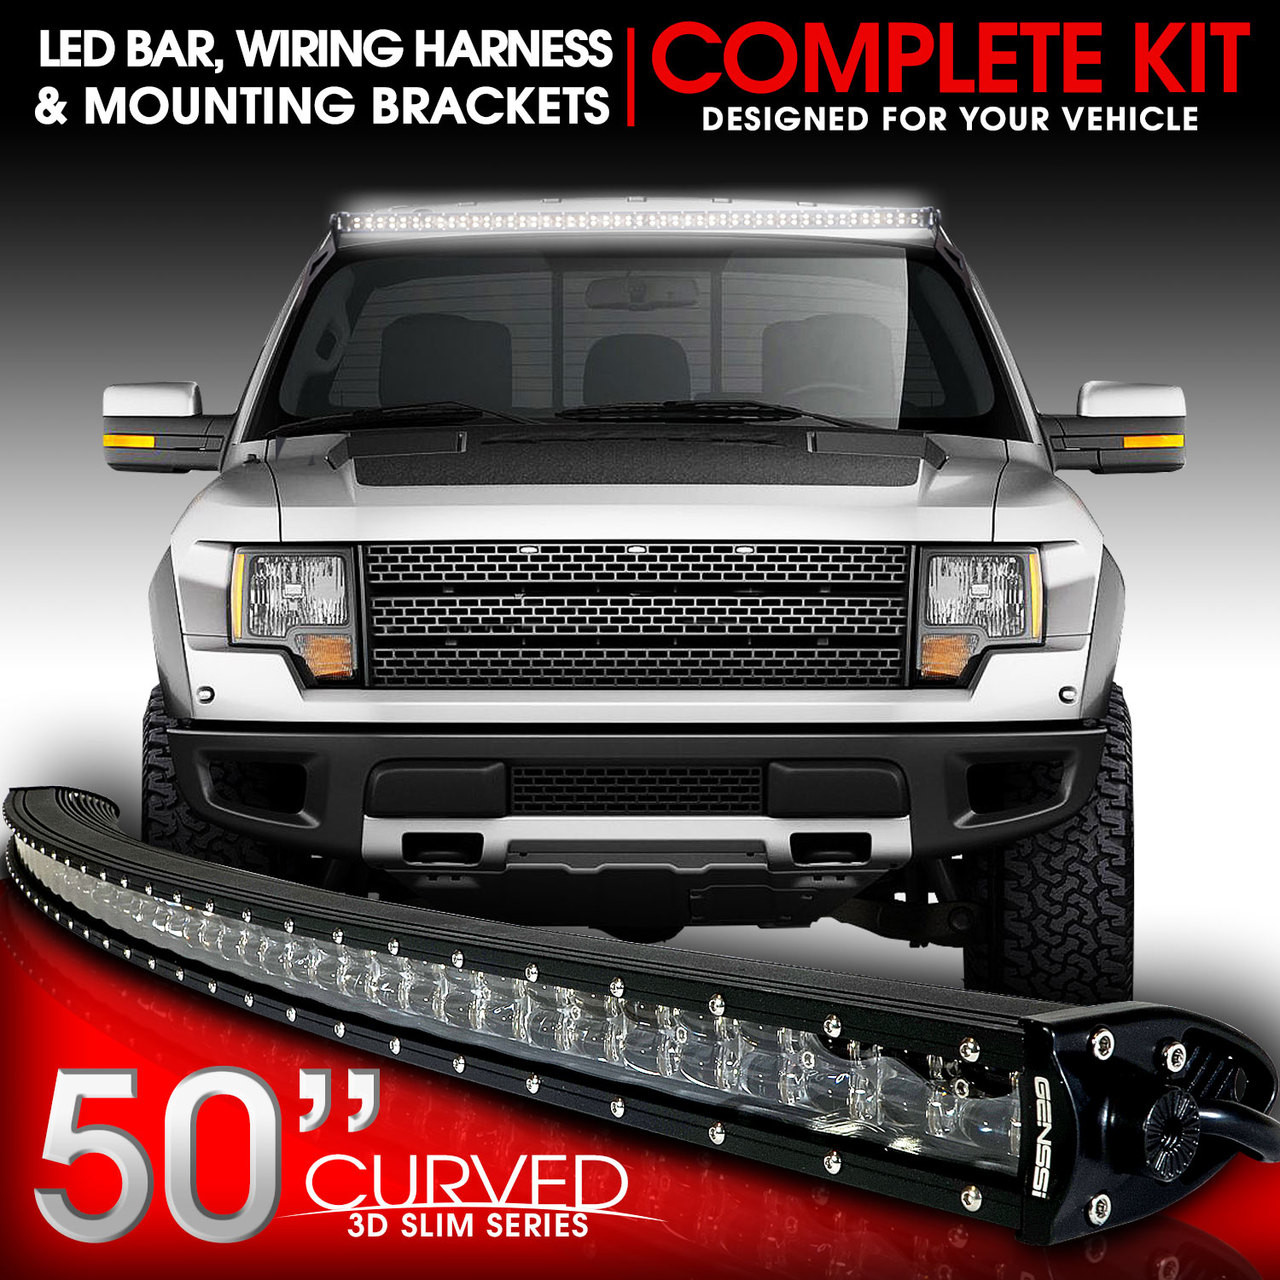 led light bar curved 288w 50 inches bracket wiring harness kit forled light bar curved 288w [ 1280 x 1280 Pixel ]